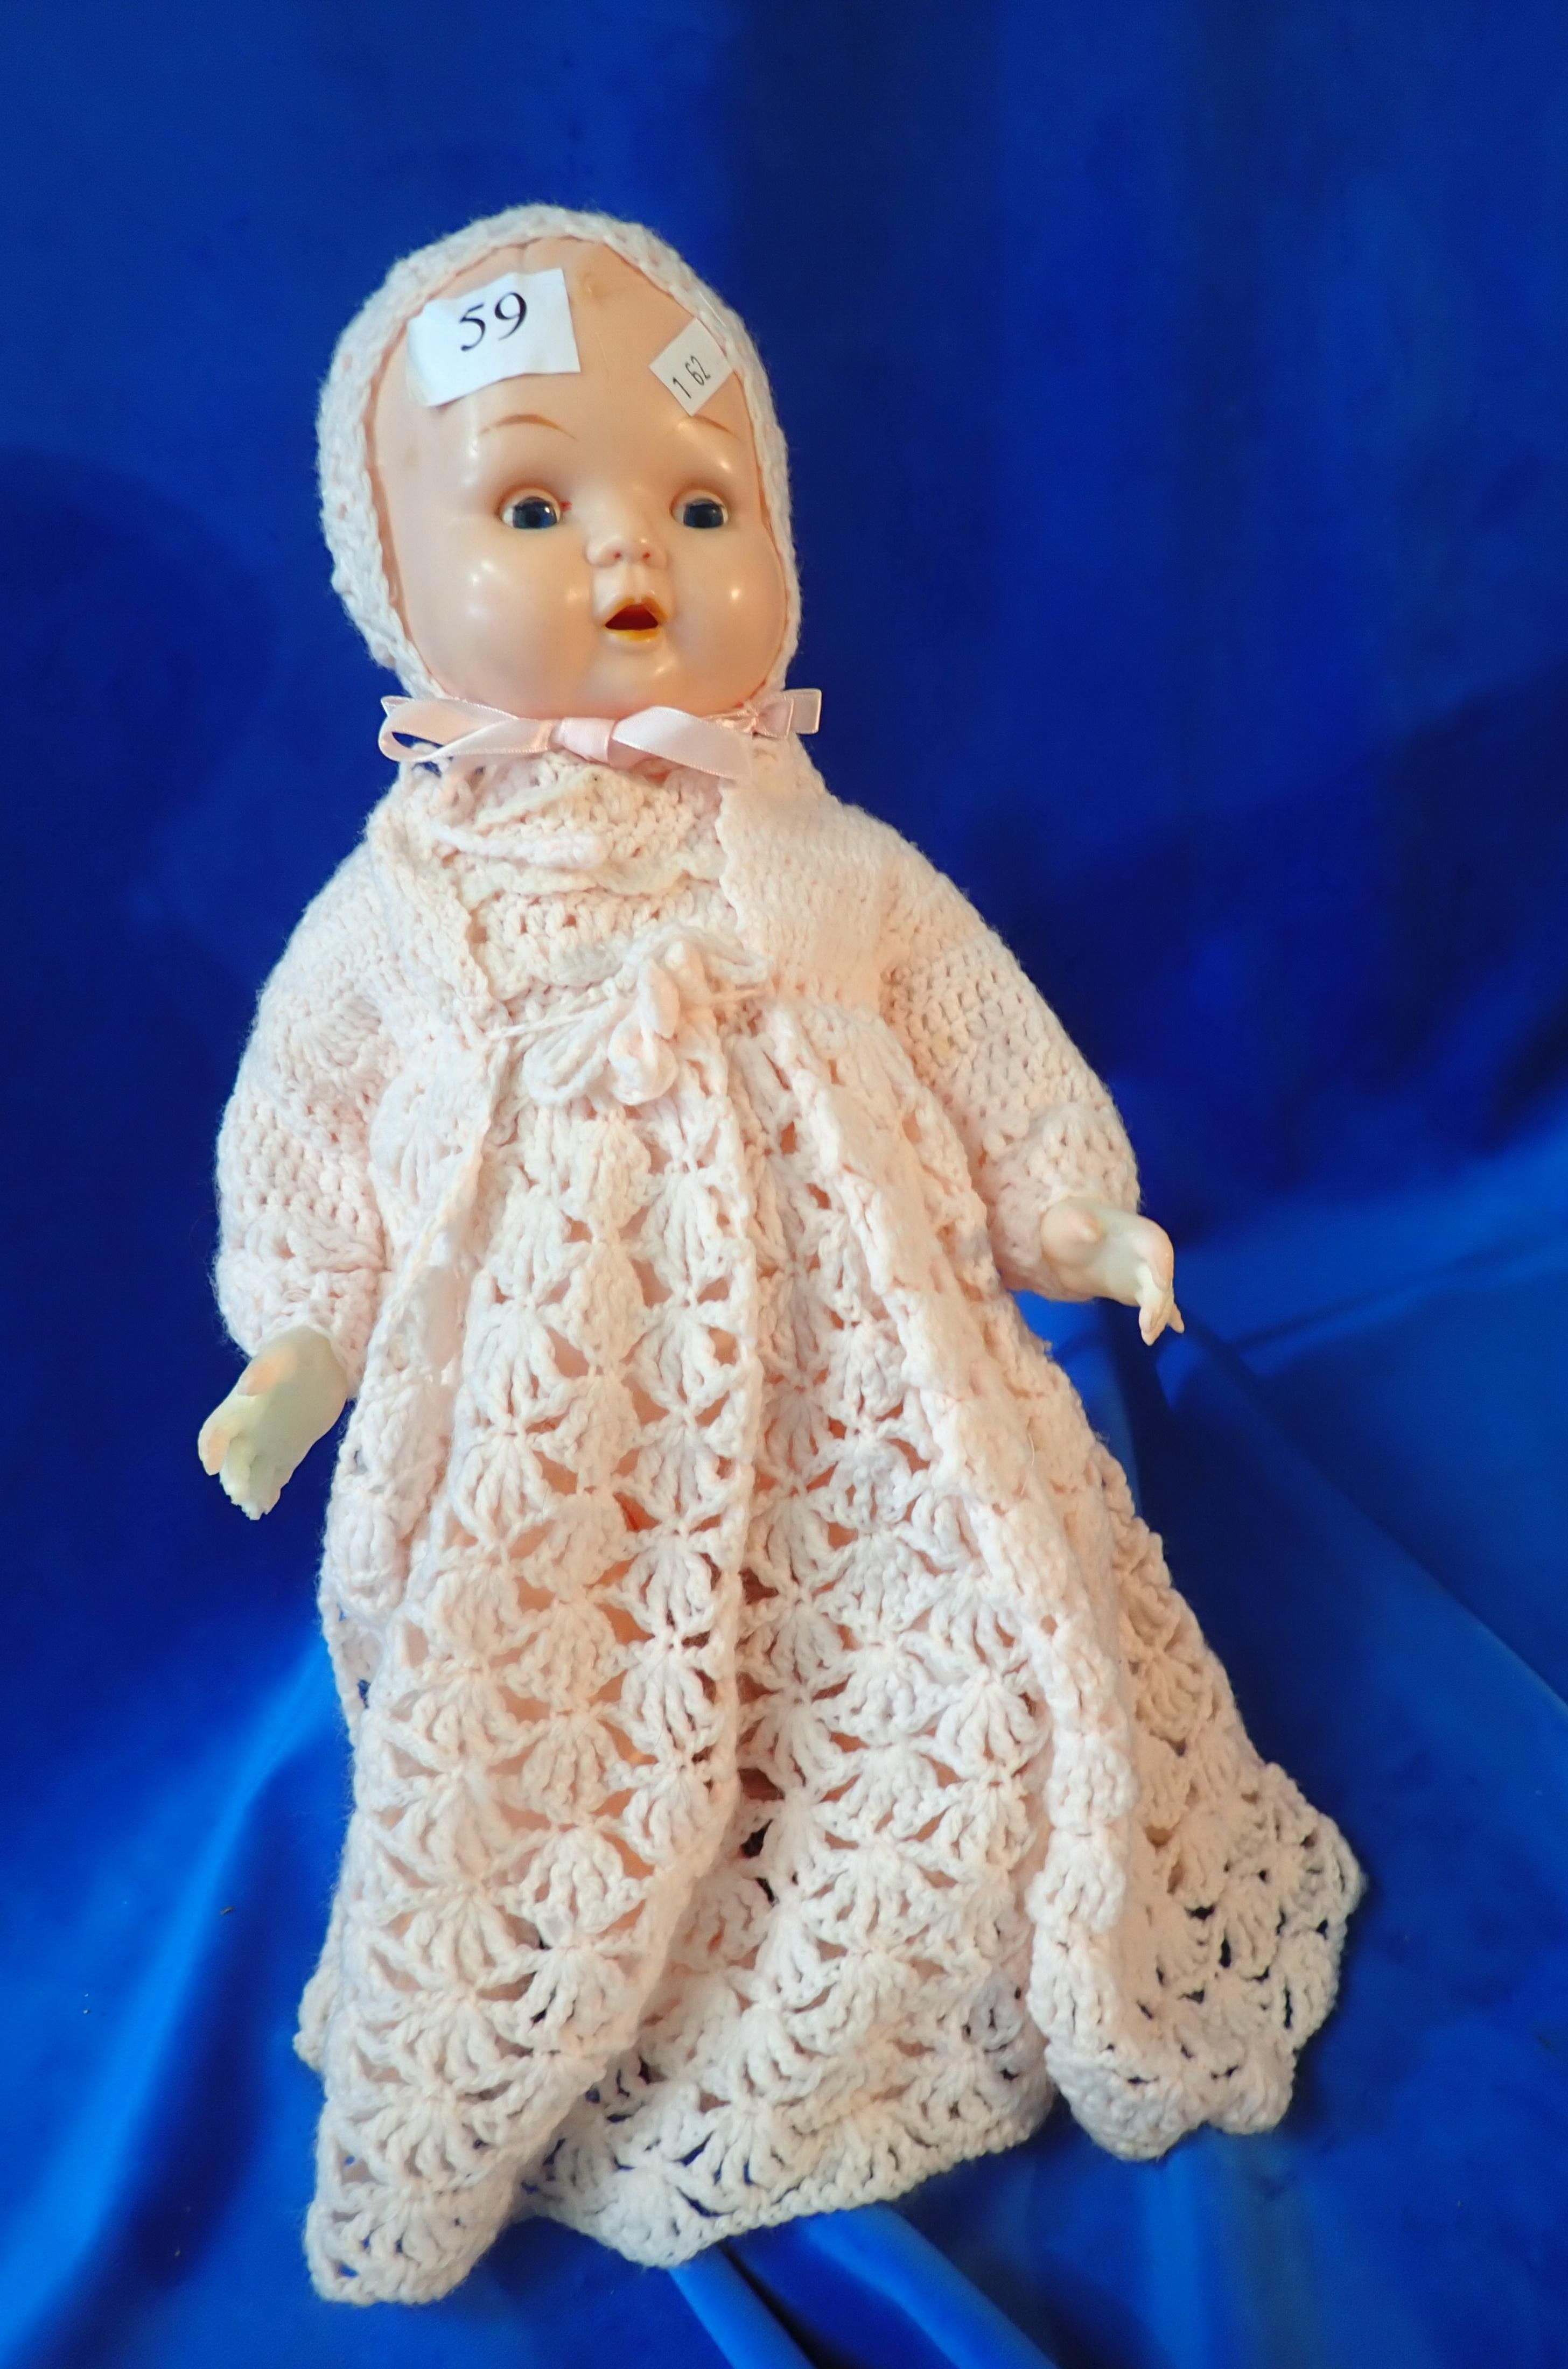 """15"""" OK KADER CELLULOID DOLL - B3516 1/2 BH - SOME DISCOLOURATION TO HANDS - MOVEABLE EYES AND TONGUE"""